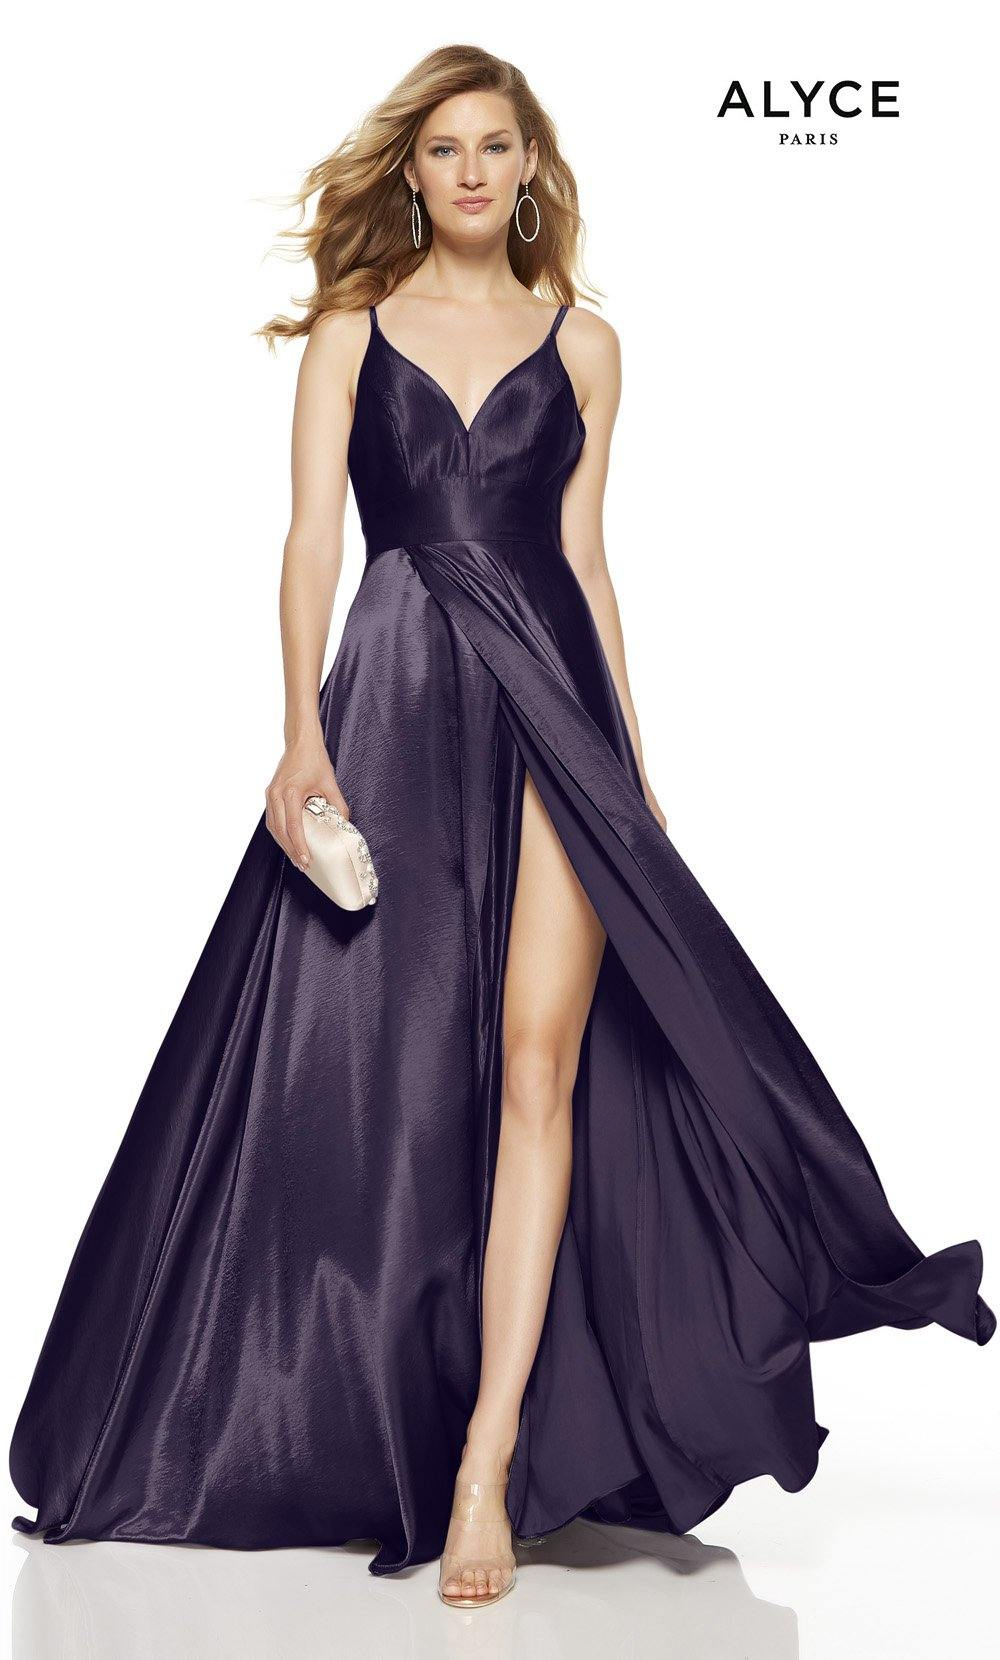 Eggplant formal dress with a V-neck and a high slit